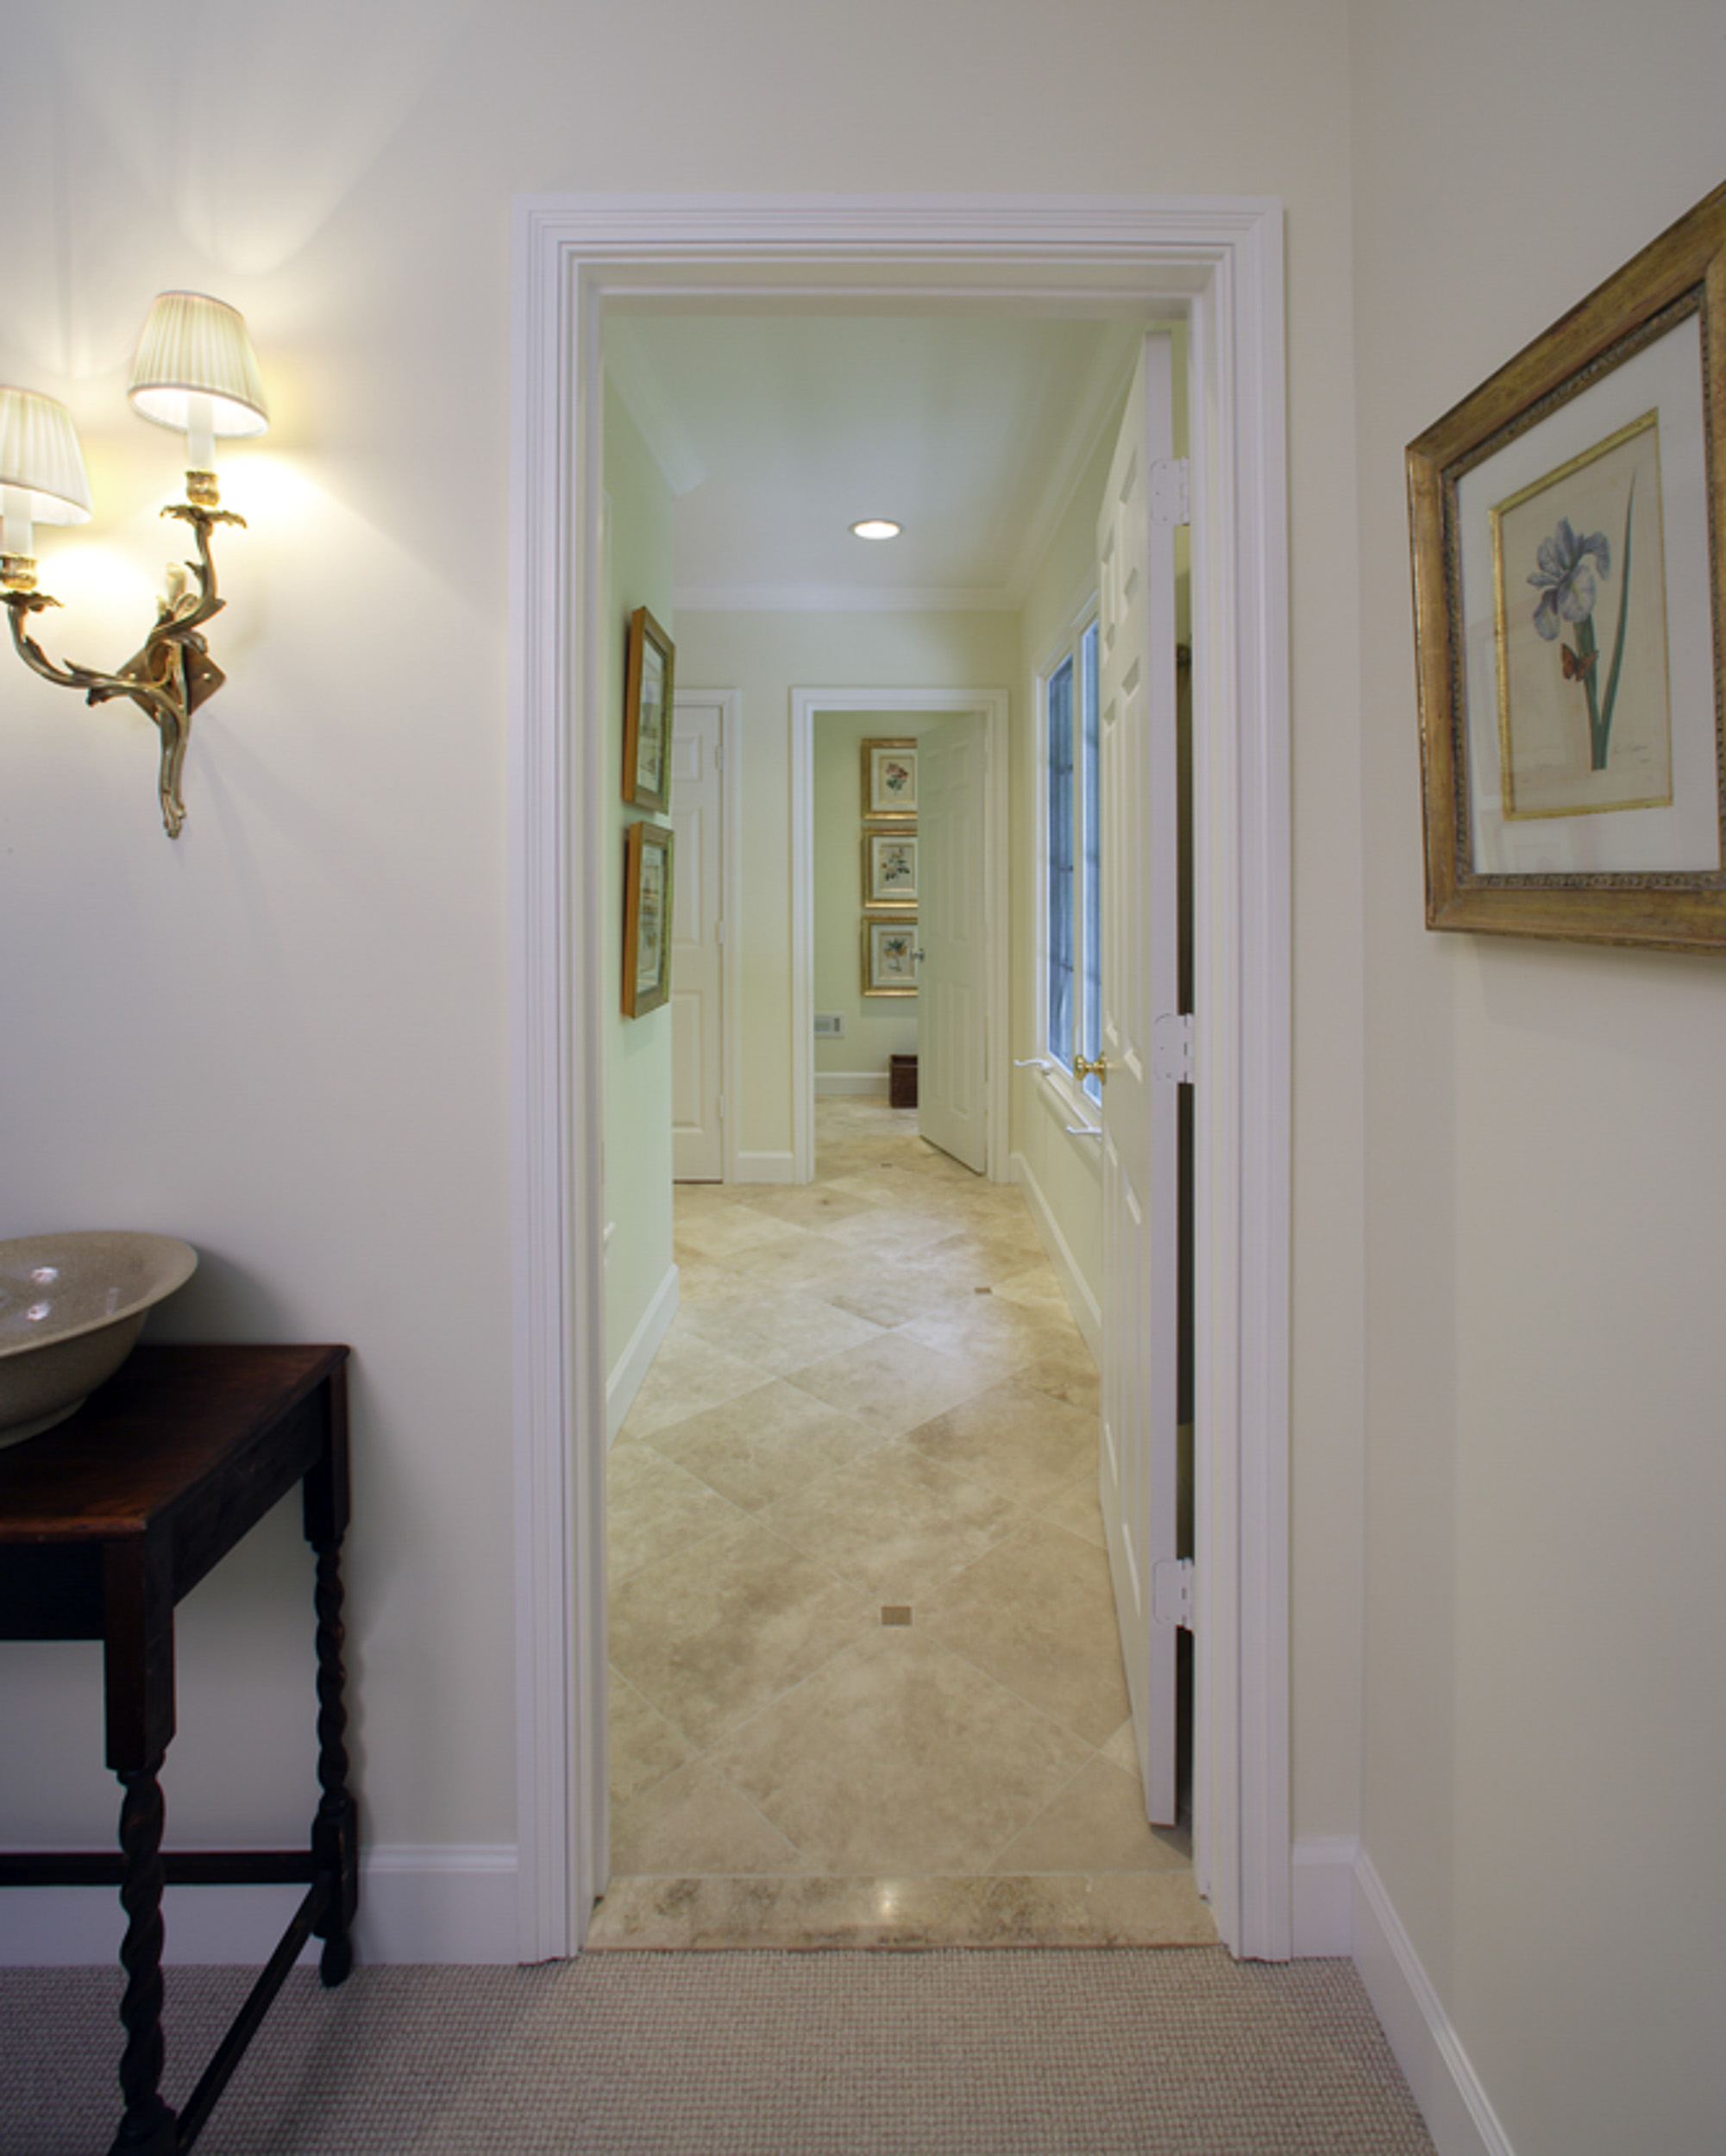 Buckhead-Renovation-Bathroom-Hall-www.jpg